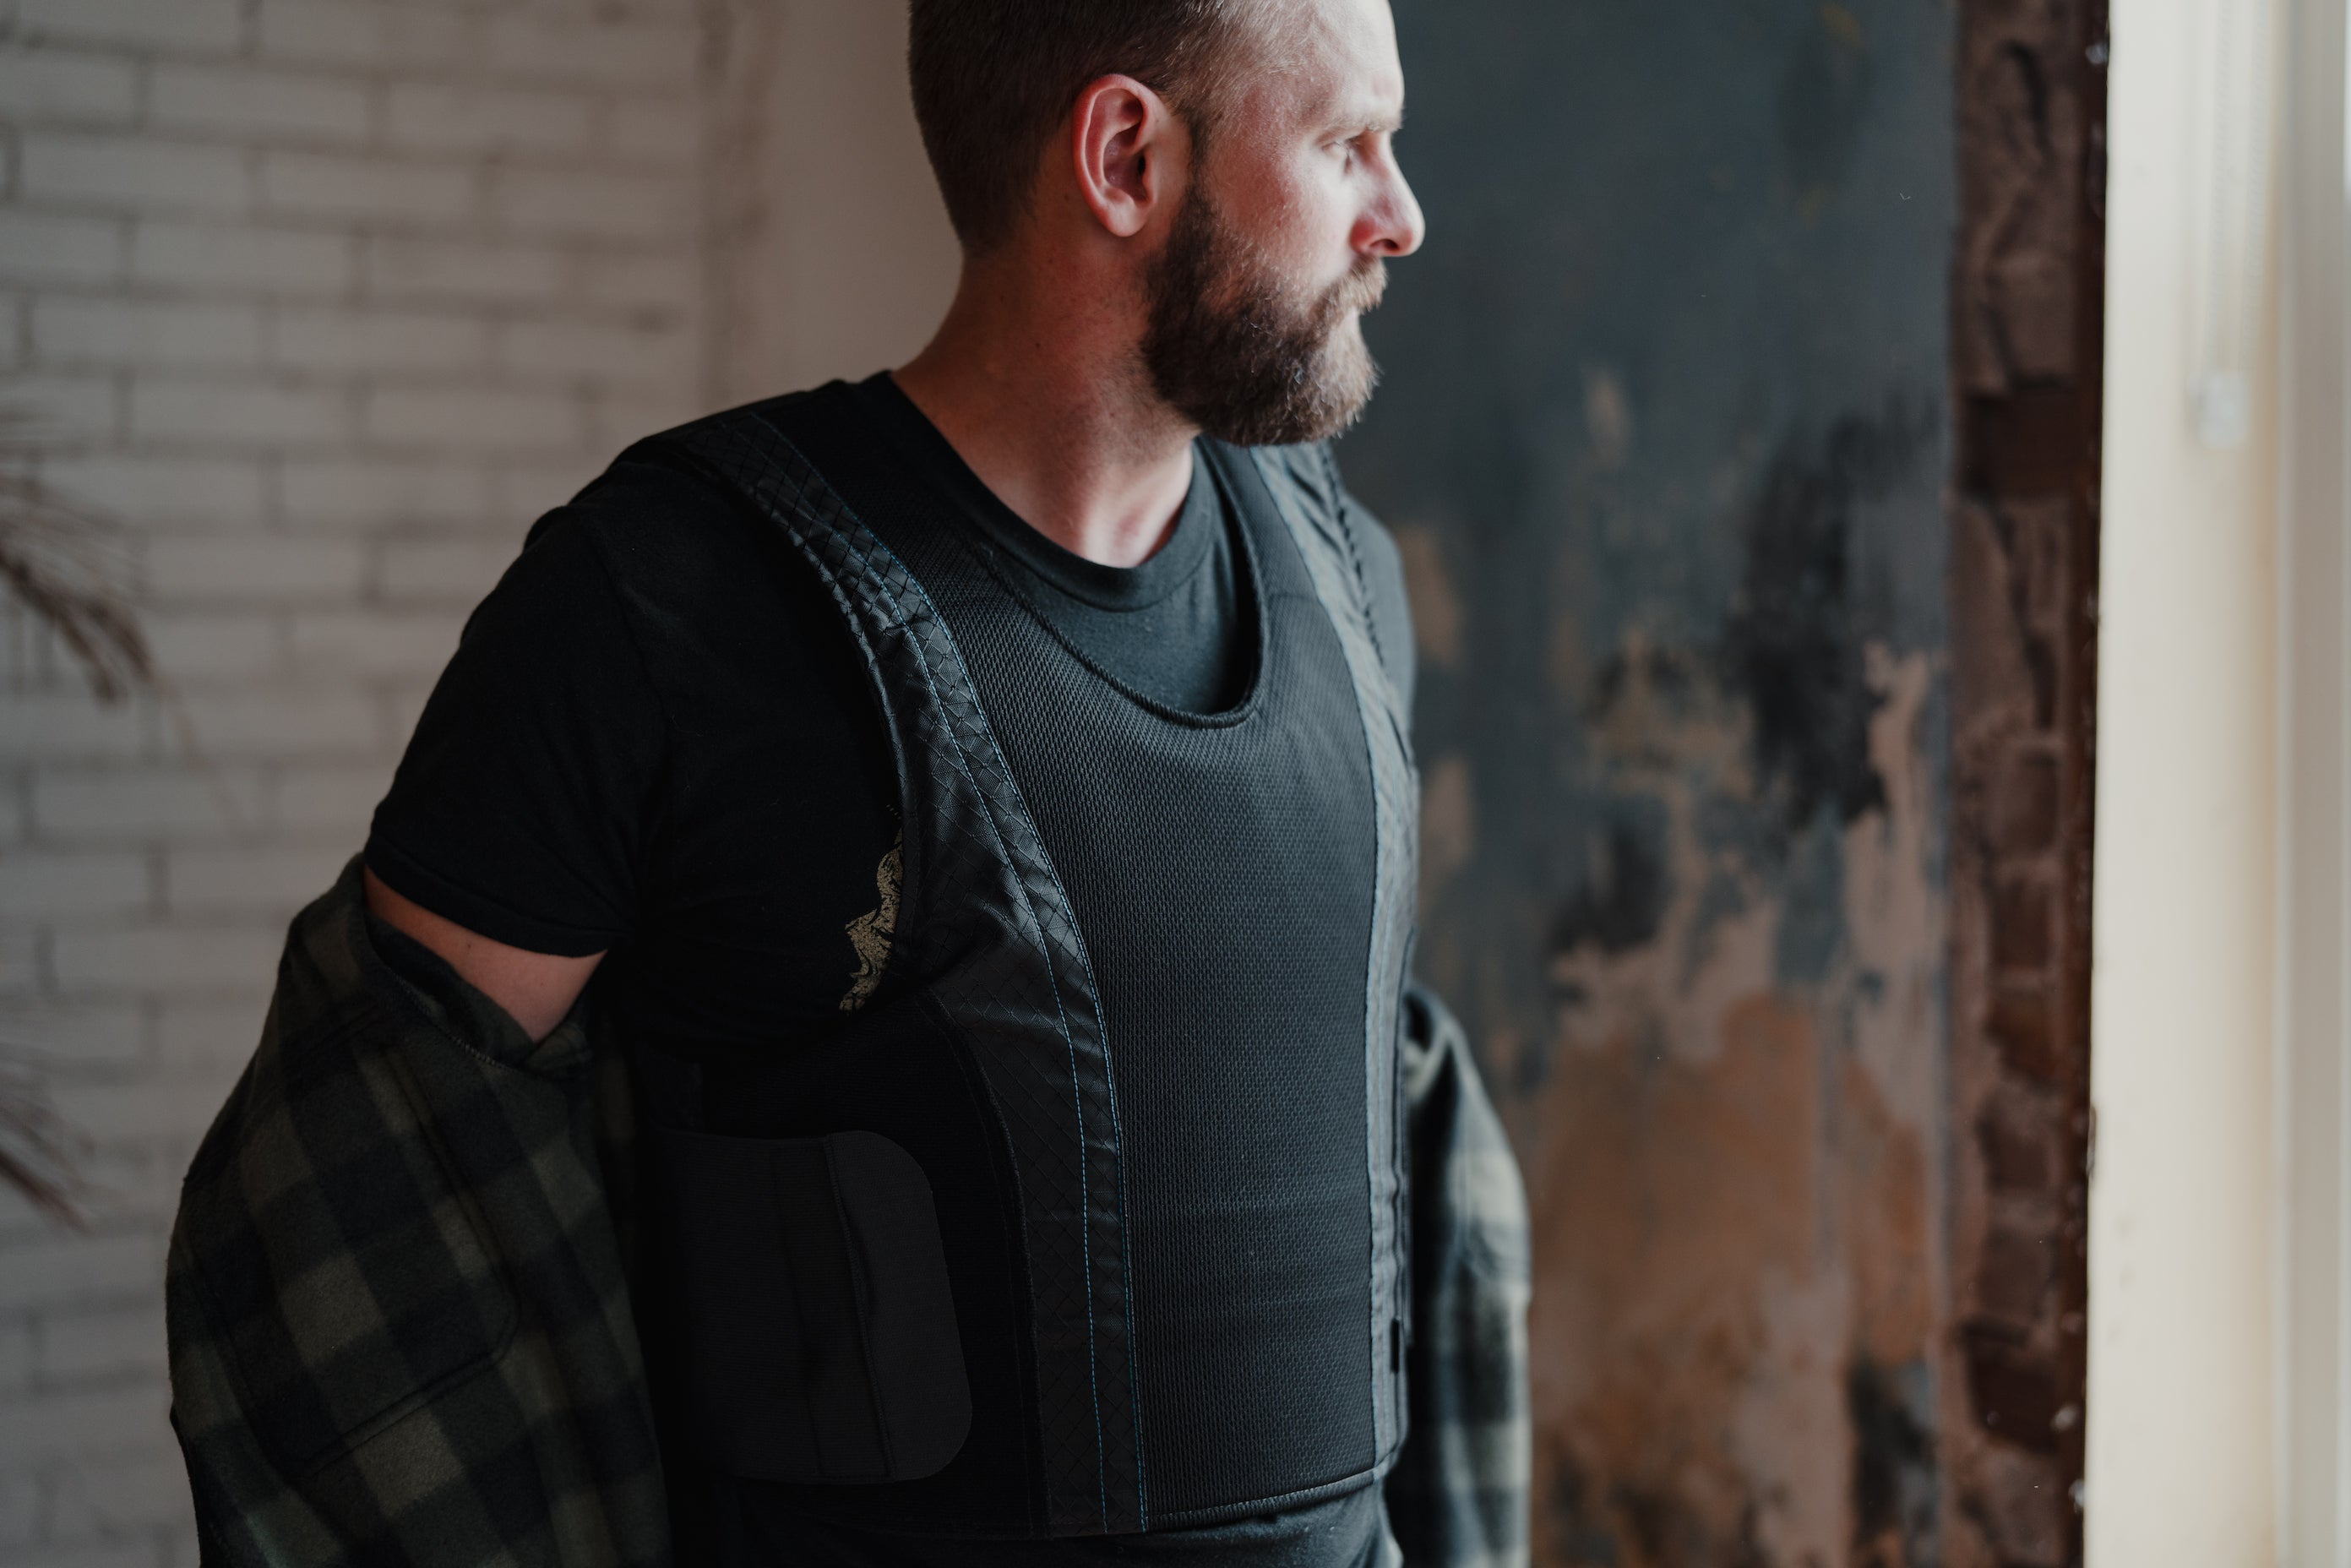 The concealable armor vest by premier body armor.  The most comfortable level IIIA vest on the market.  100% made in the usa